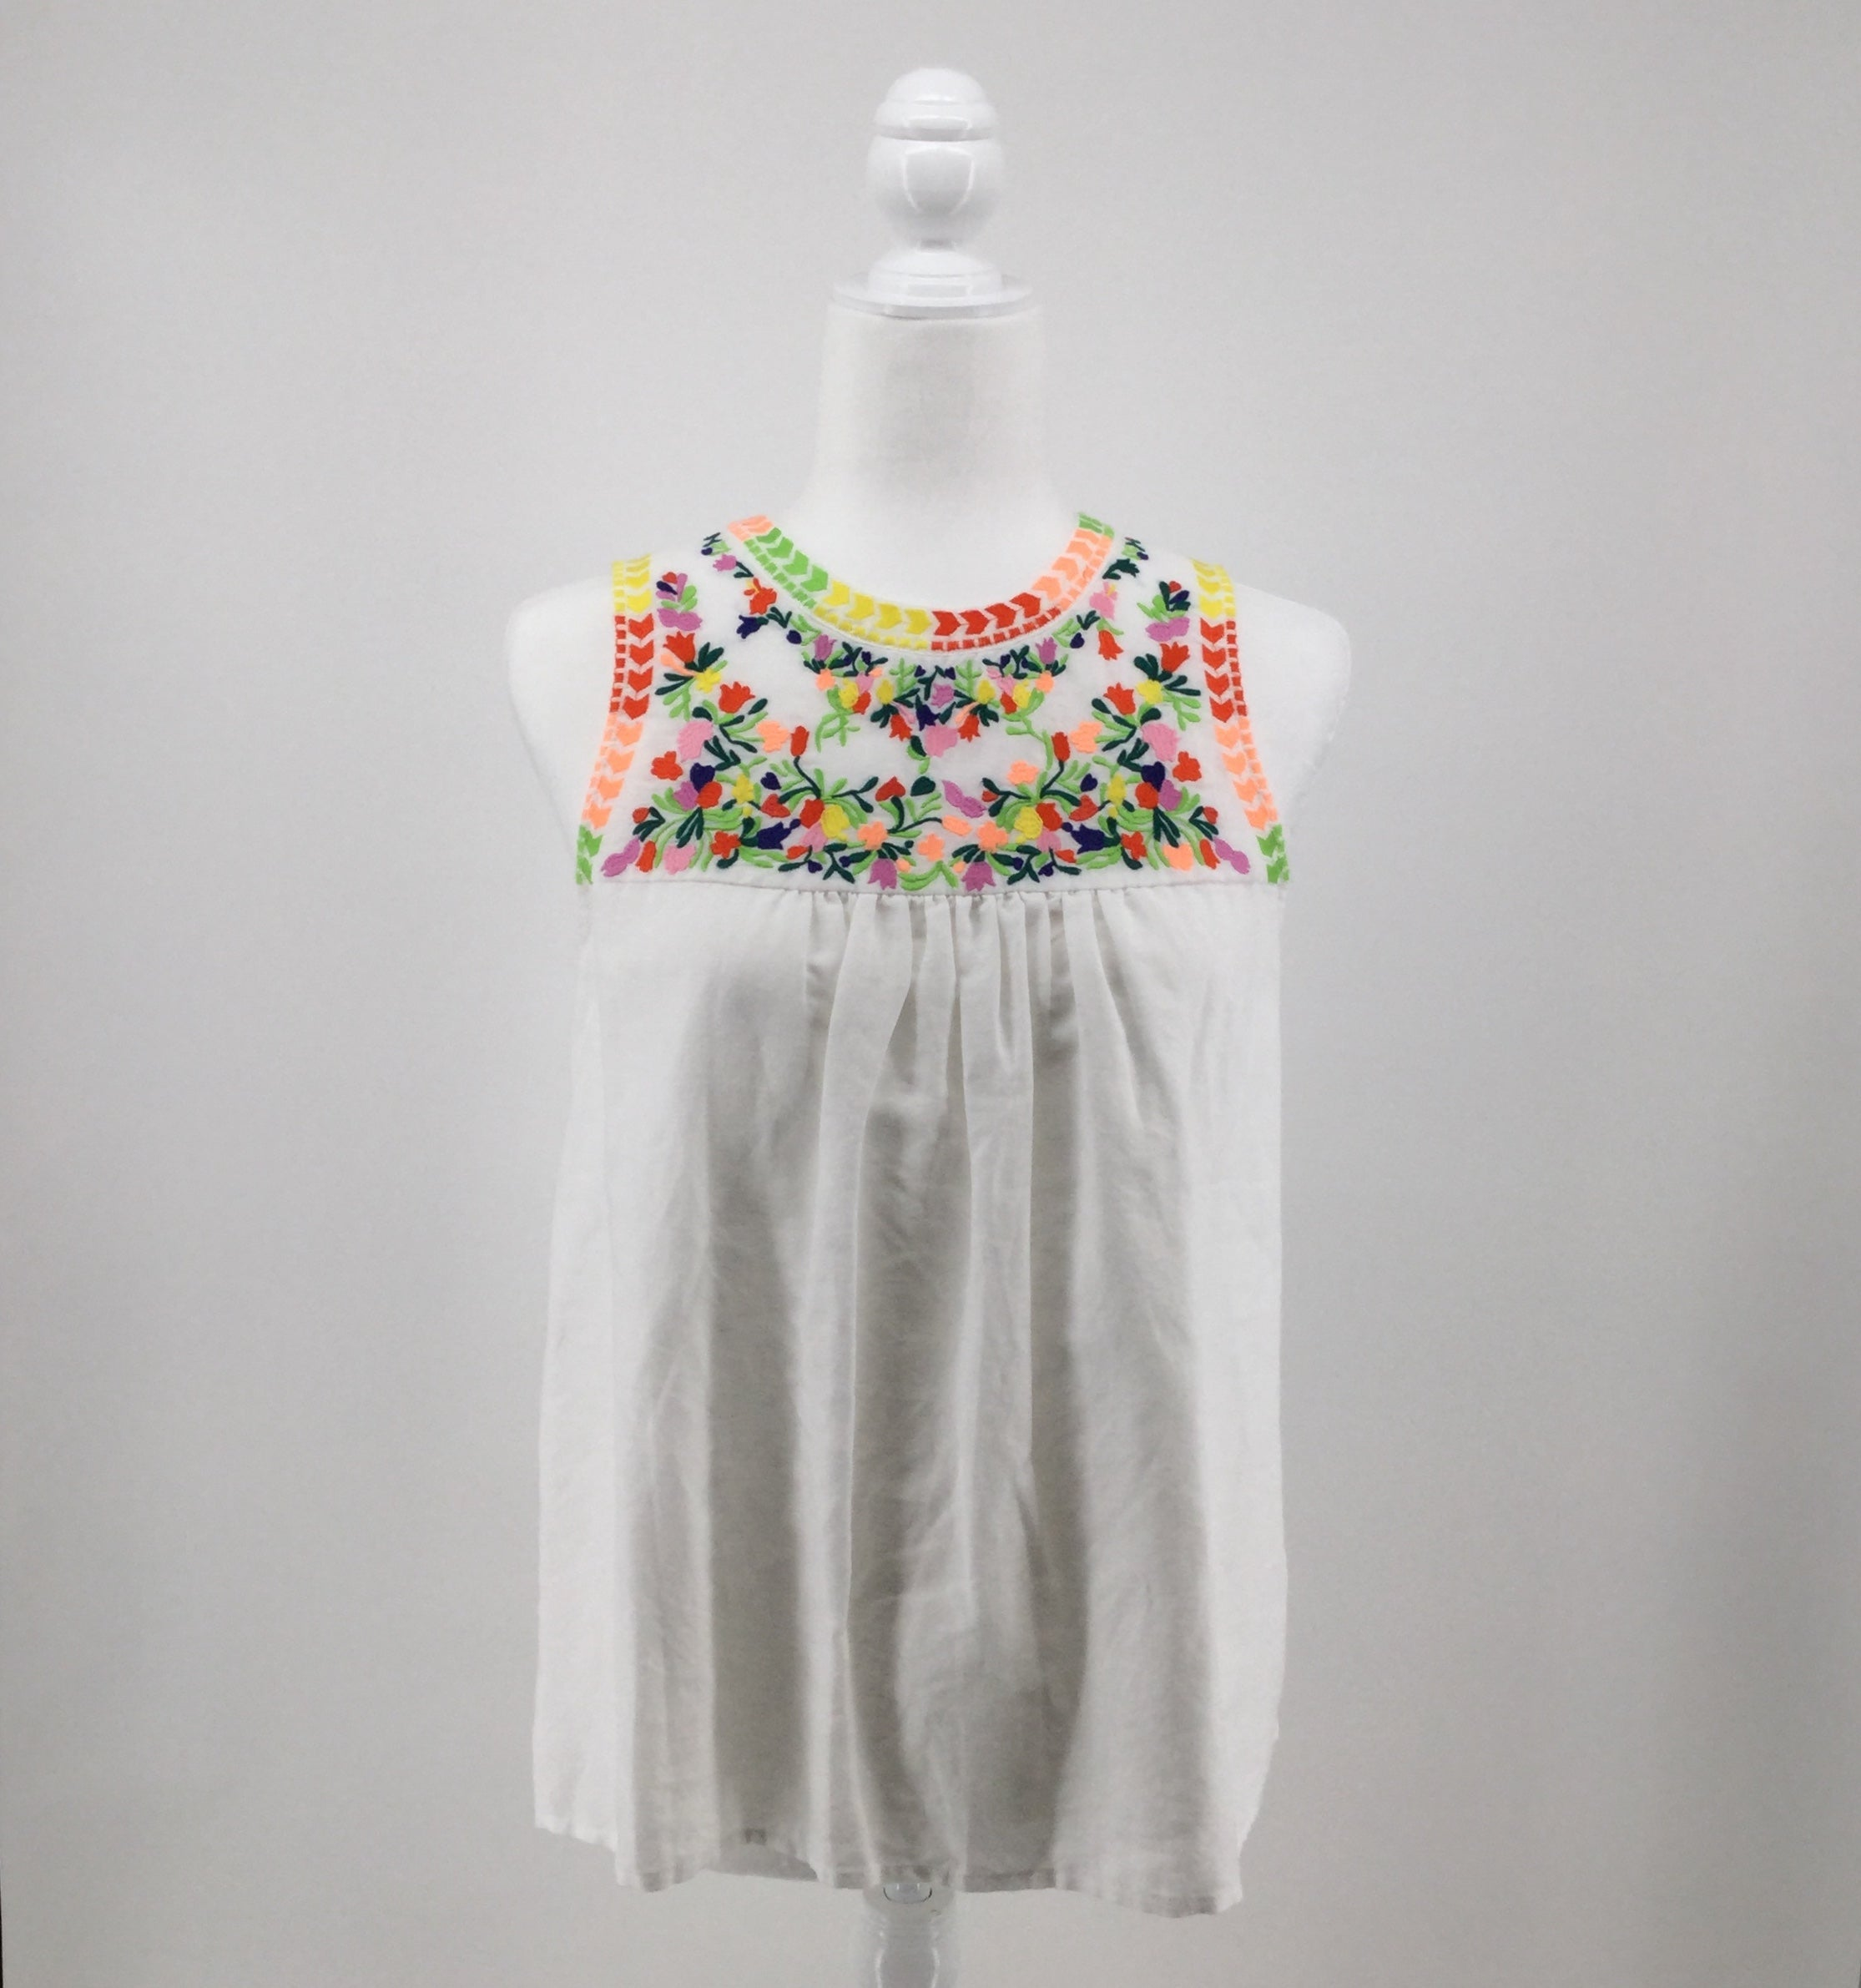 APPAREL,TOPS - J CREW SLEEVELESS TOP WITH PASTEL COLORED EMBROIDERY ON TOP. SIZE 2. LINEN, COTTON. MACHINE WASH COLD.